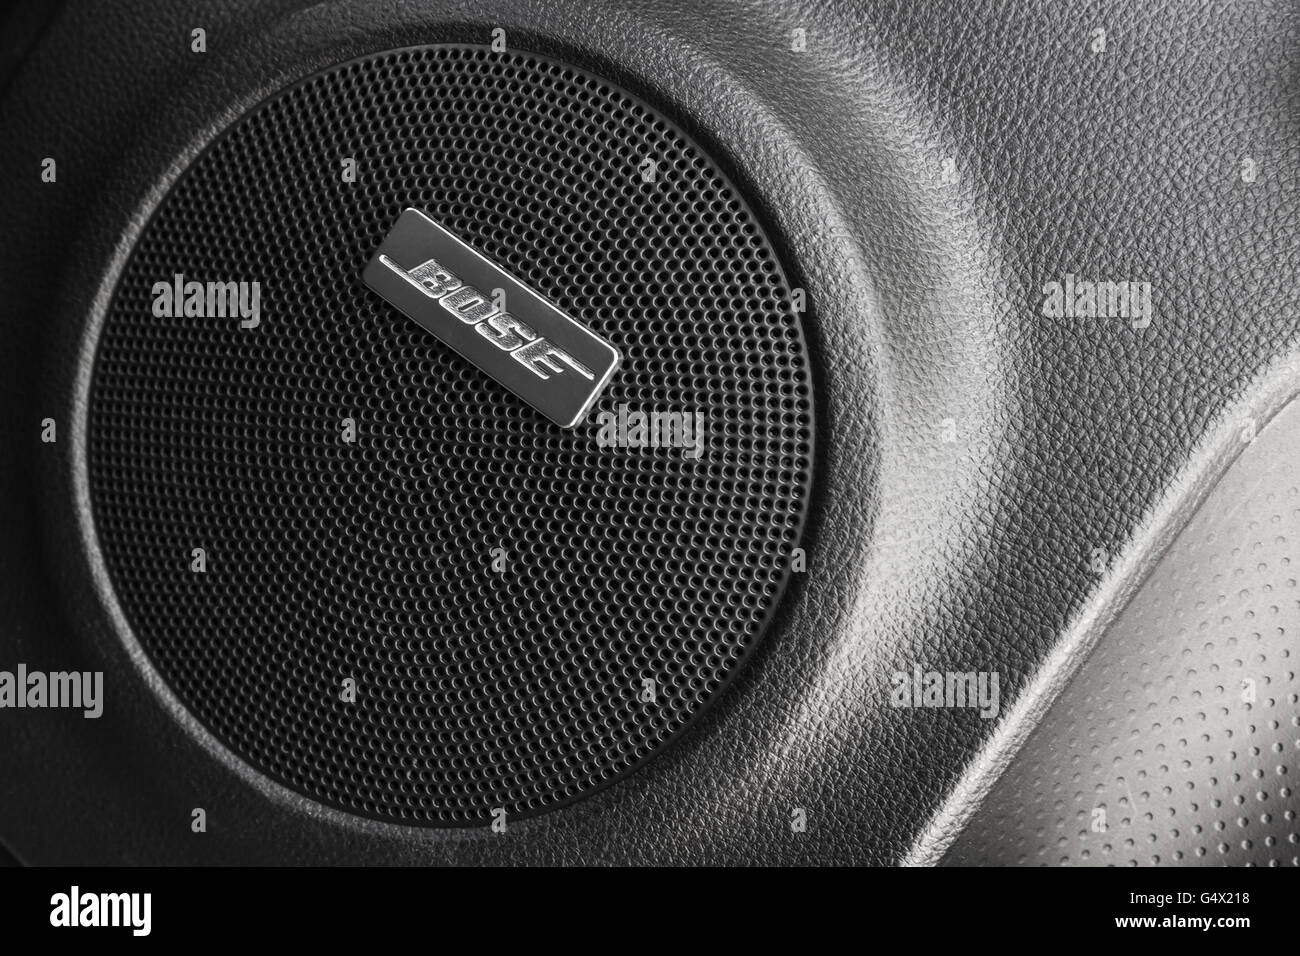 Bose Speakers For Cars >> St Petersburg Russia May 15 2016 Bose Car Audio